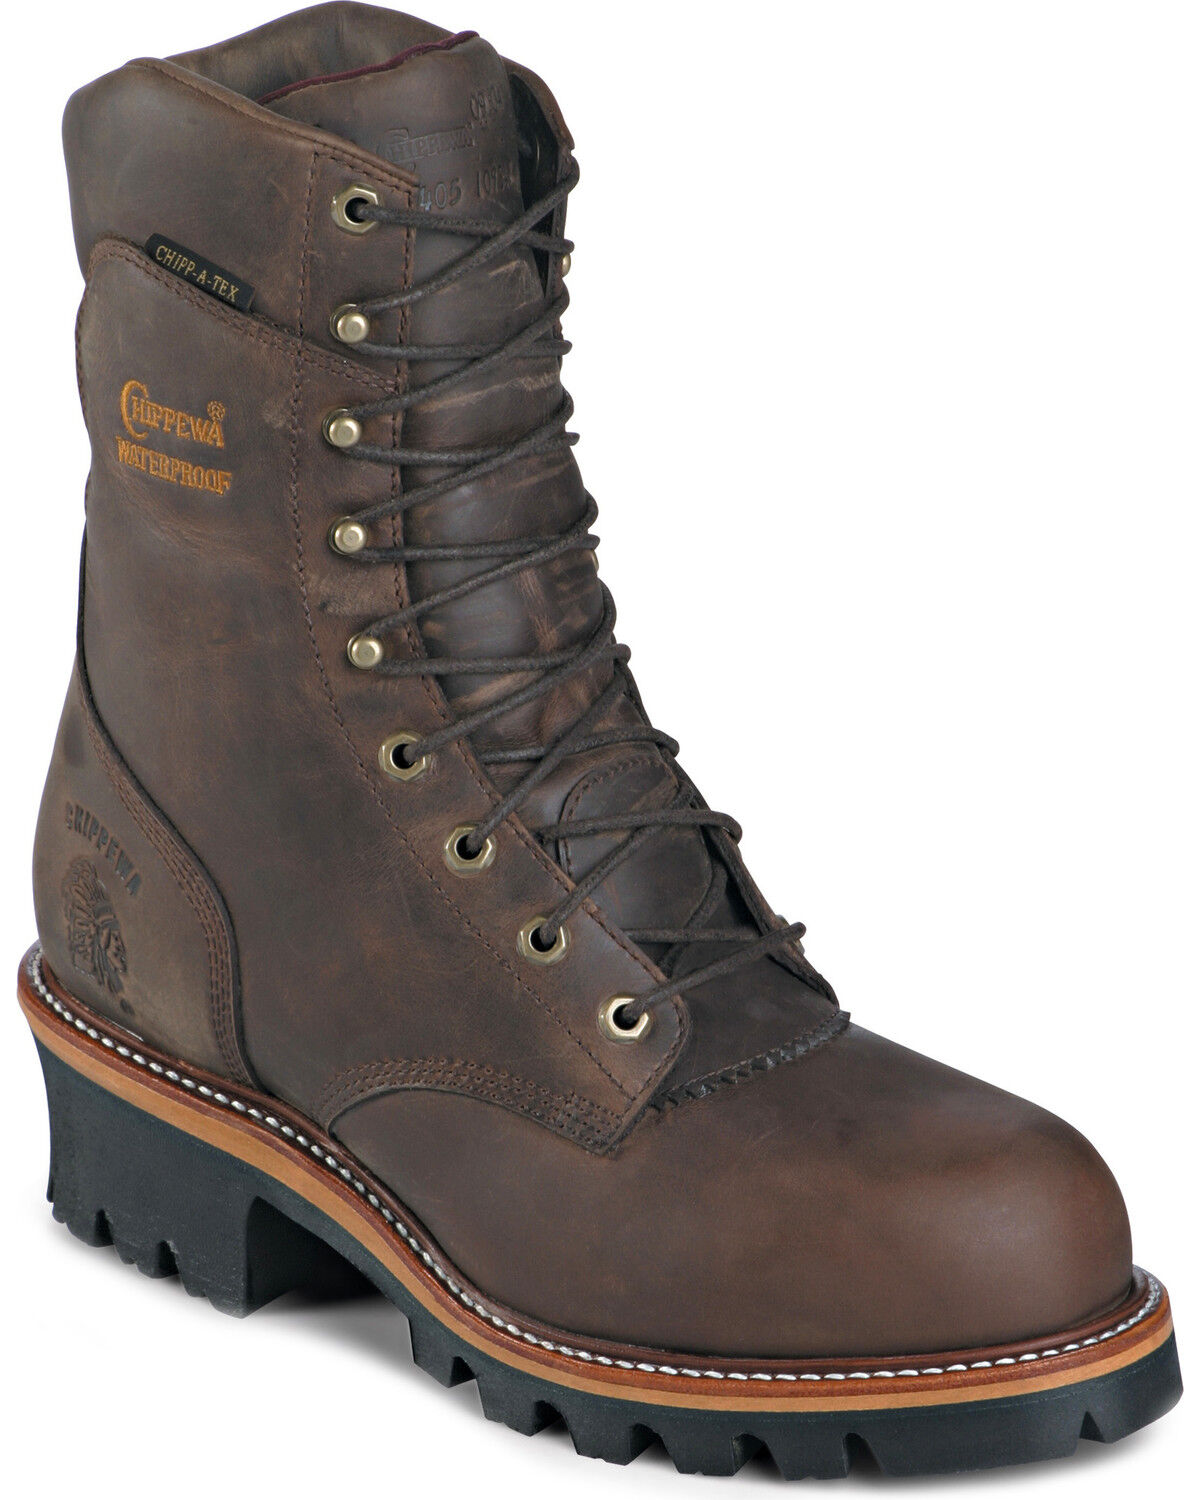 APACHE COMBAT WATER PROOF LEATHER BOOT NEW STYLE